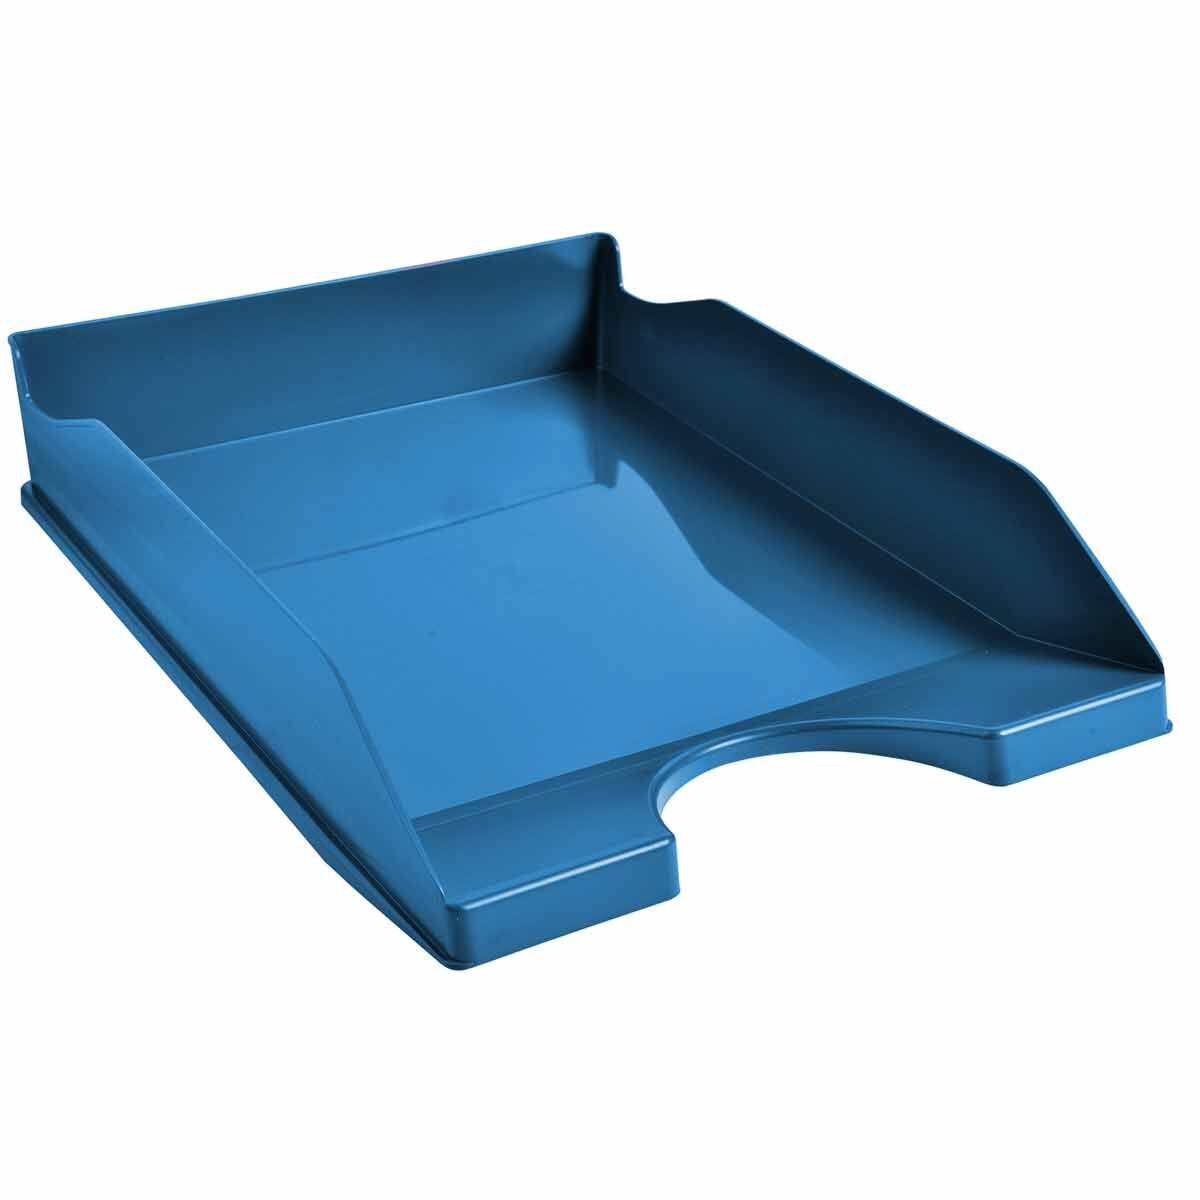 Exacompta Clean Safe A4 Letter Tray